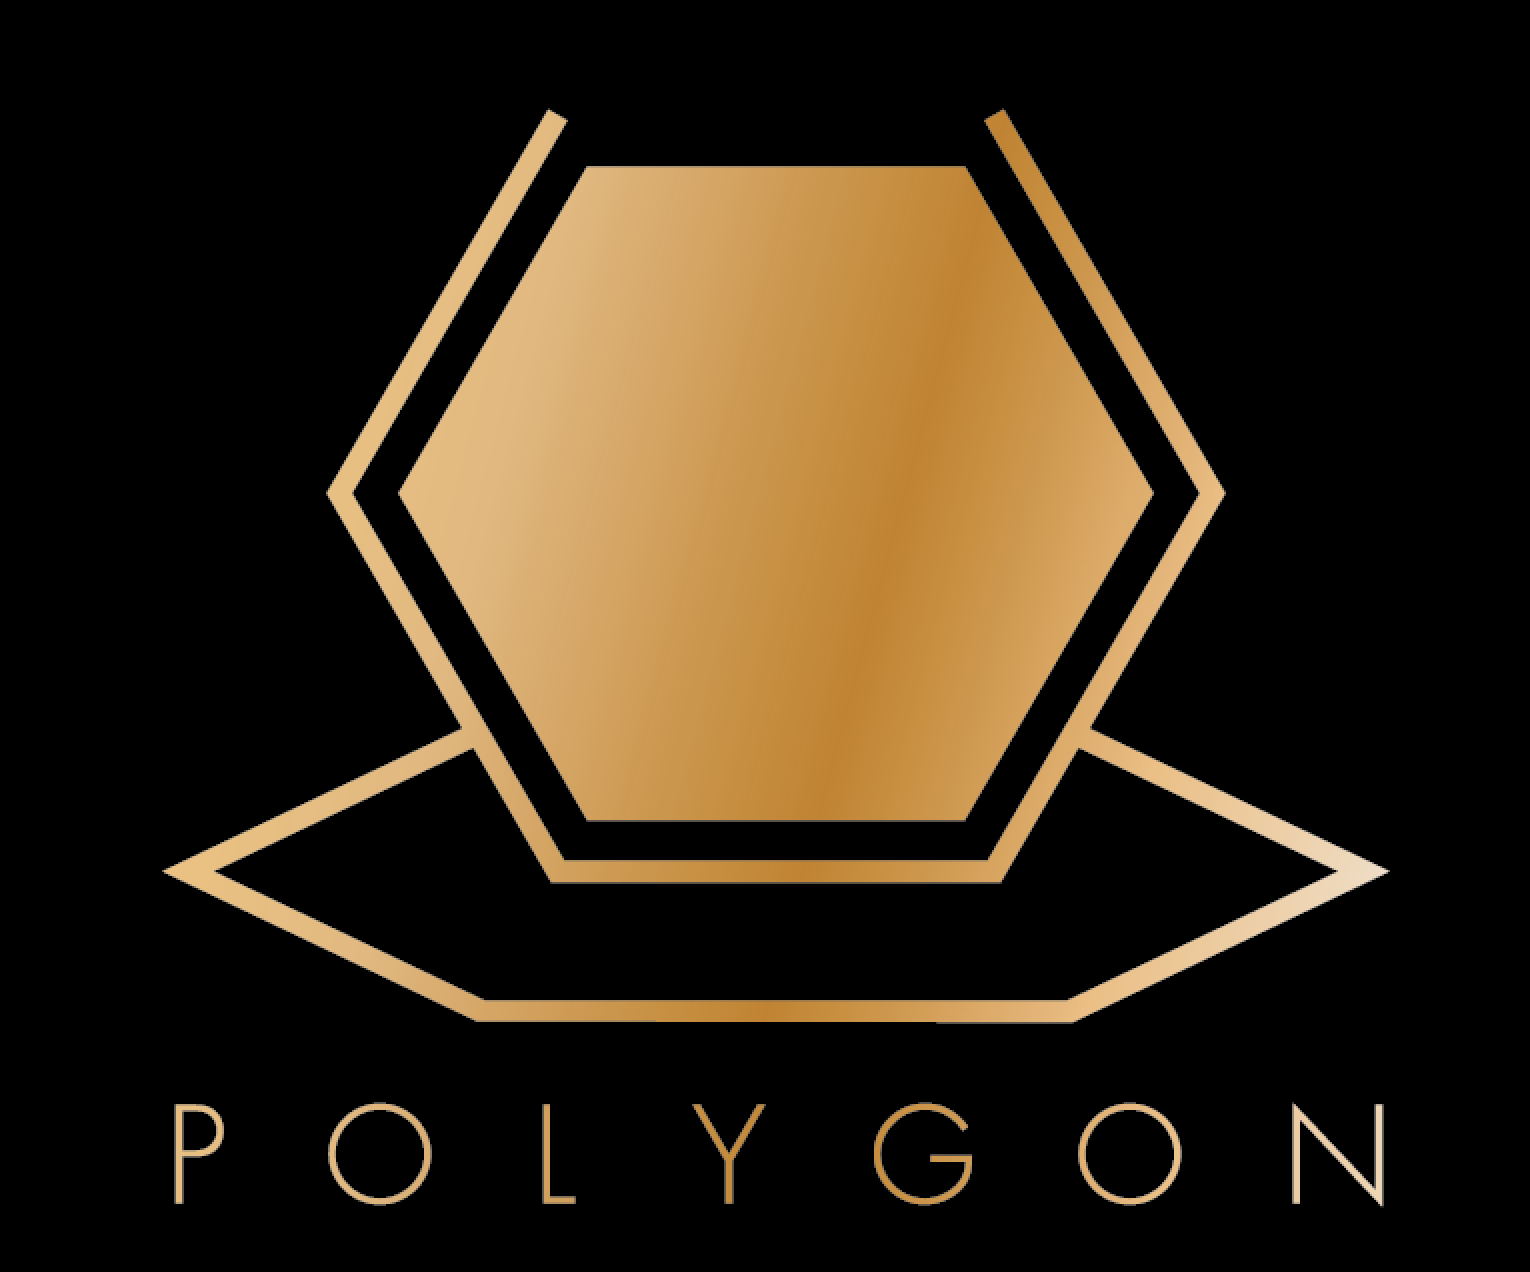 Polygon Cafe Hong Kong Logo